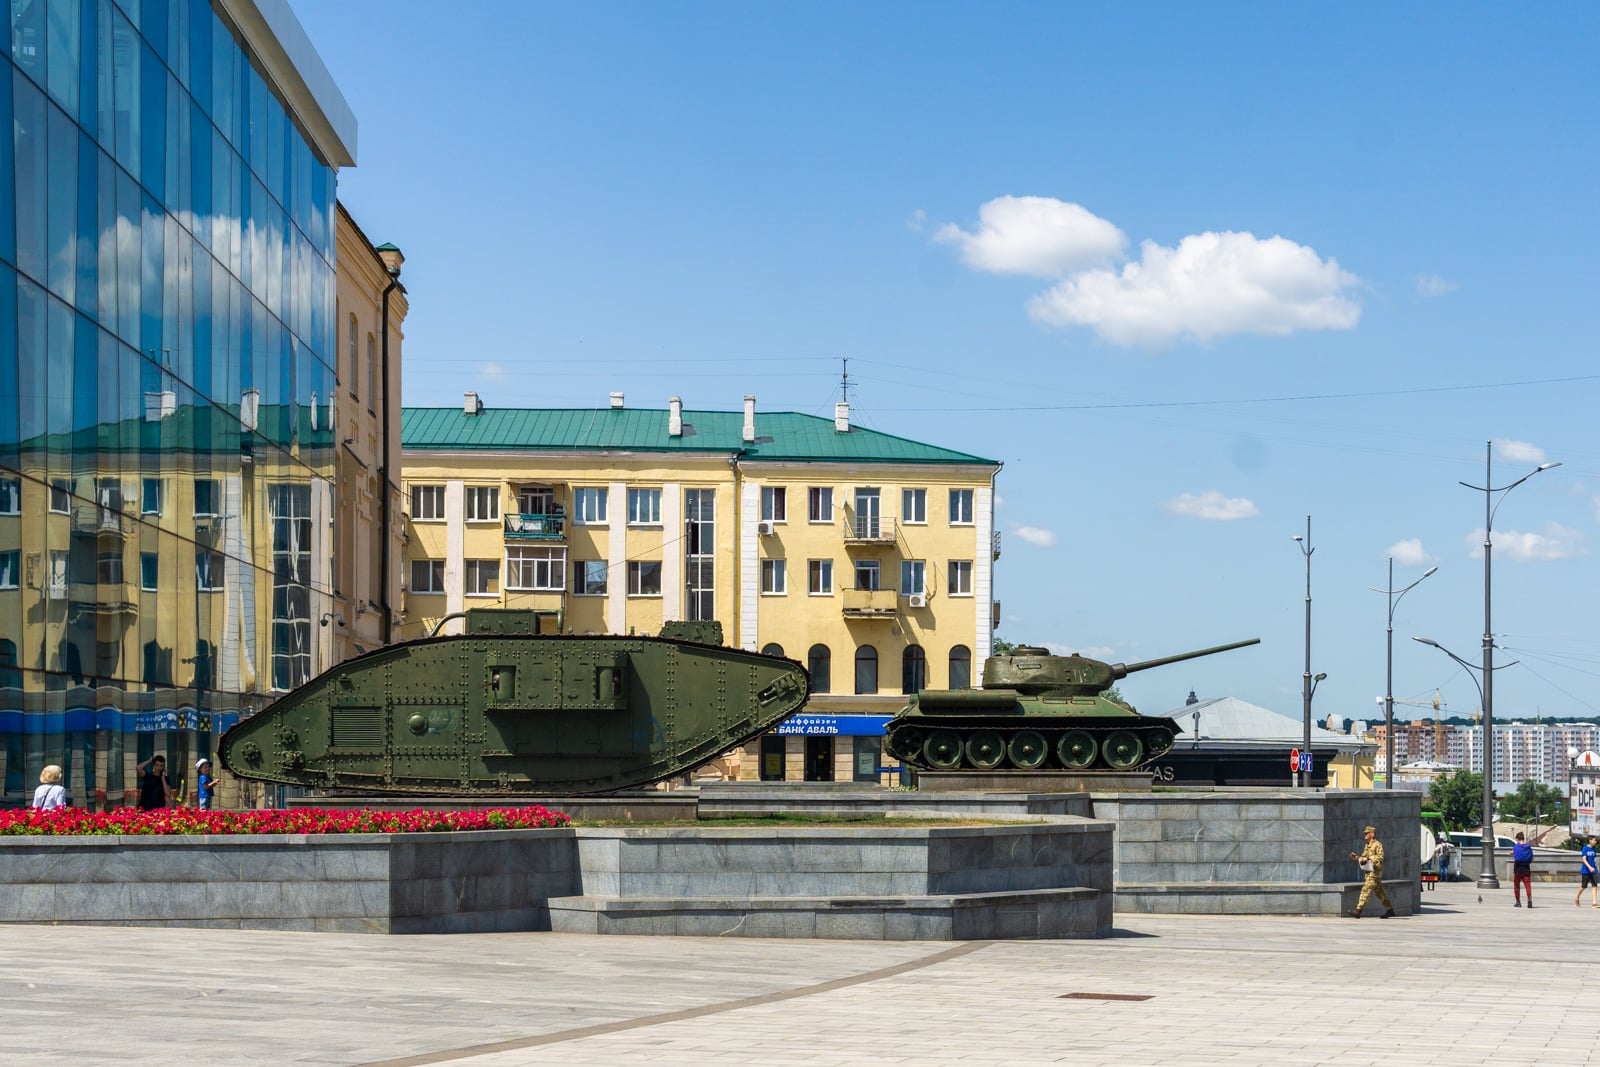 Tanks in Kharkiv, Ukraine